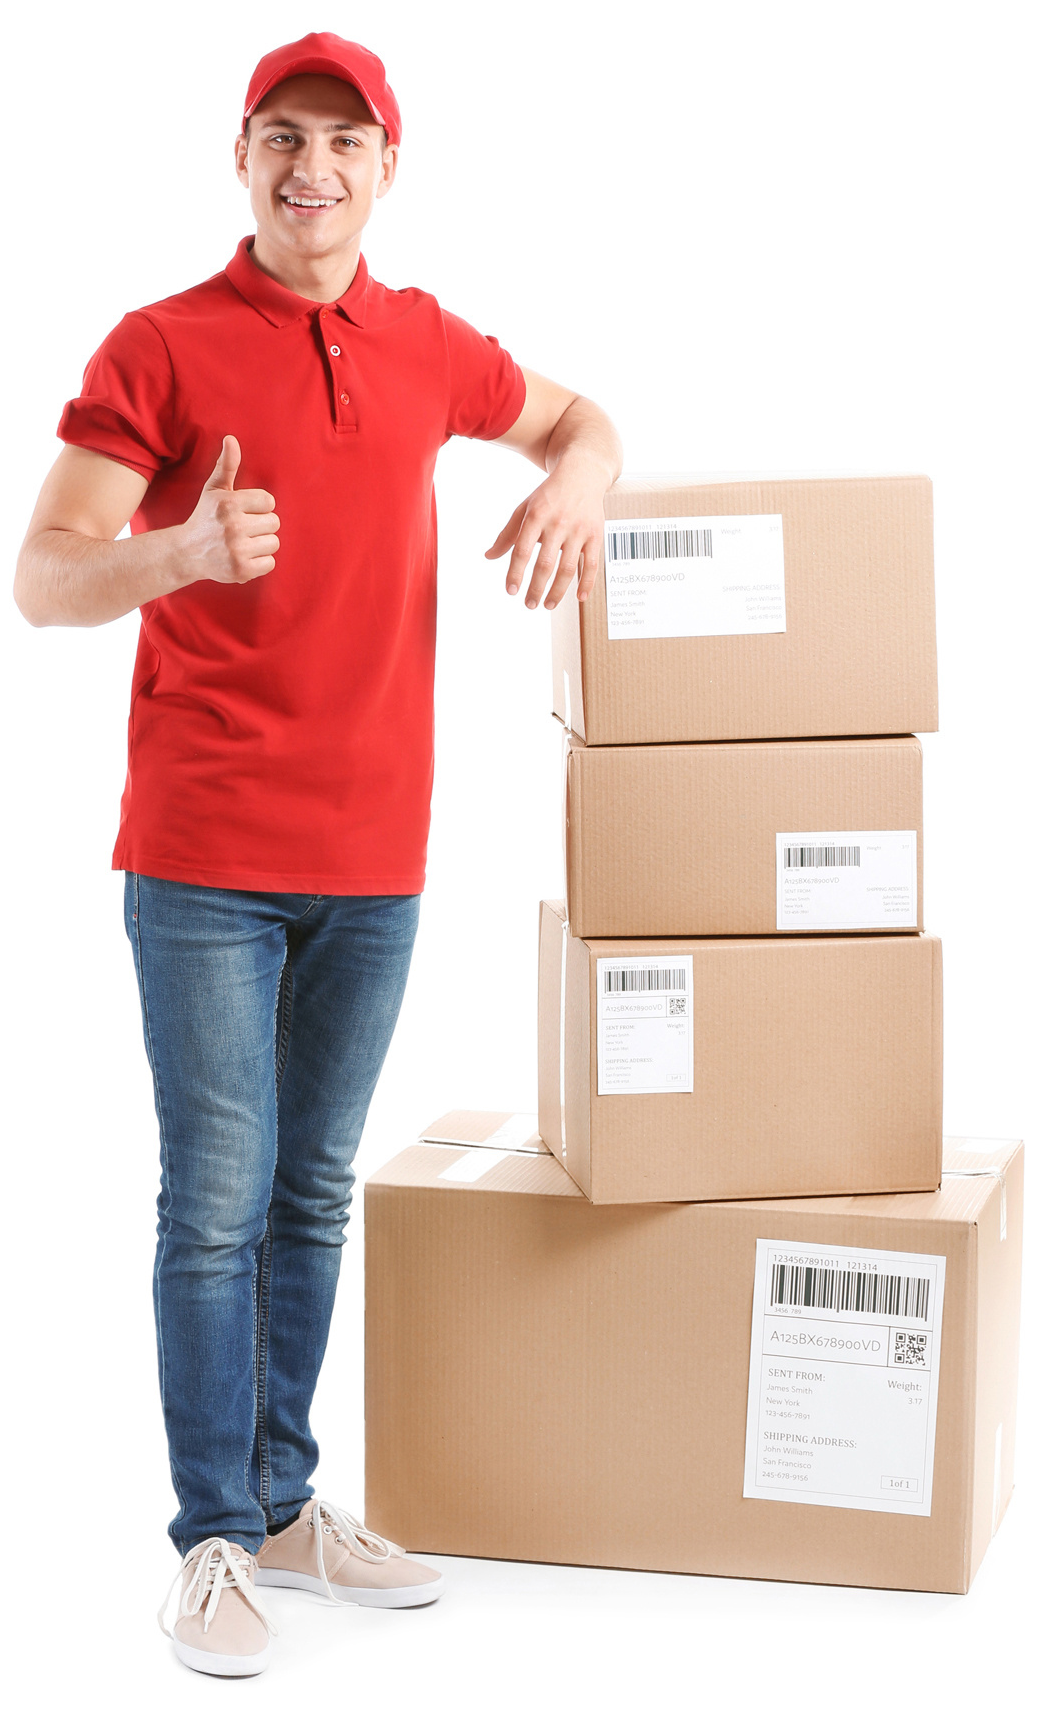 Delivery man with 4 packages - Delivery to your home